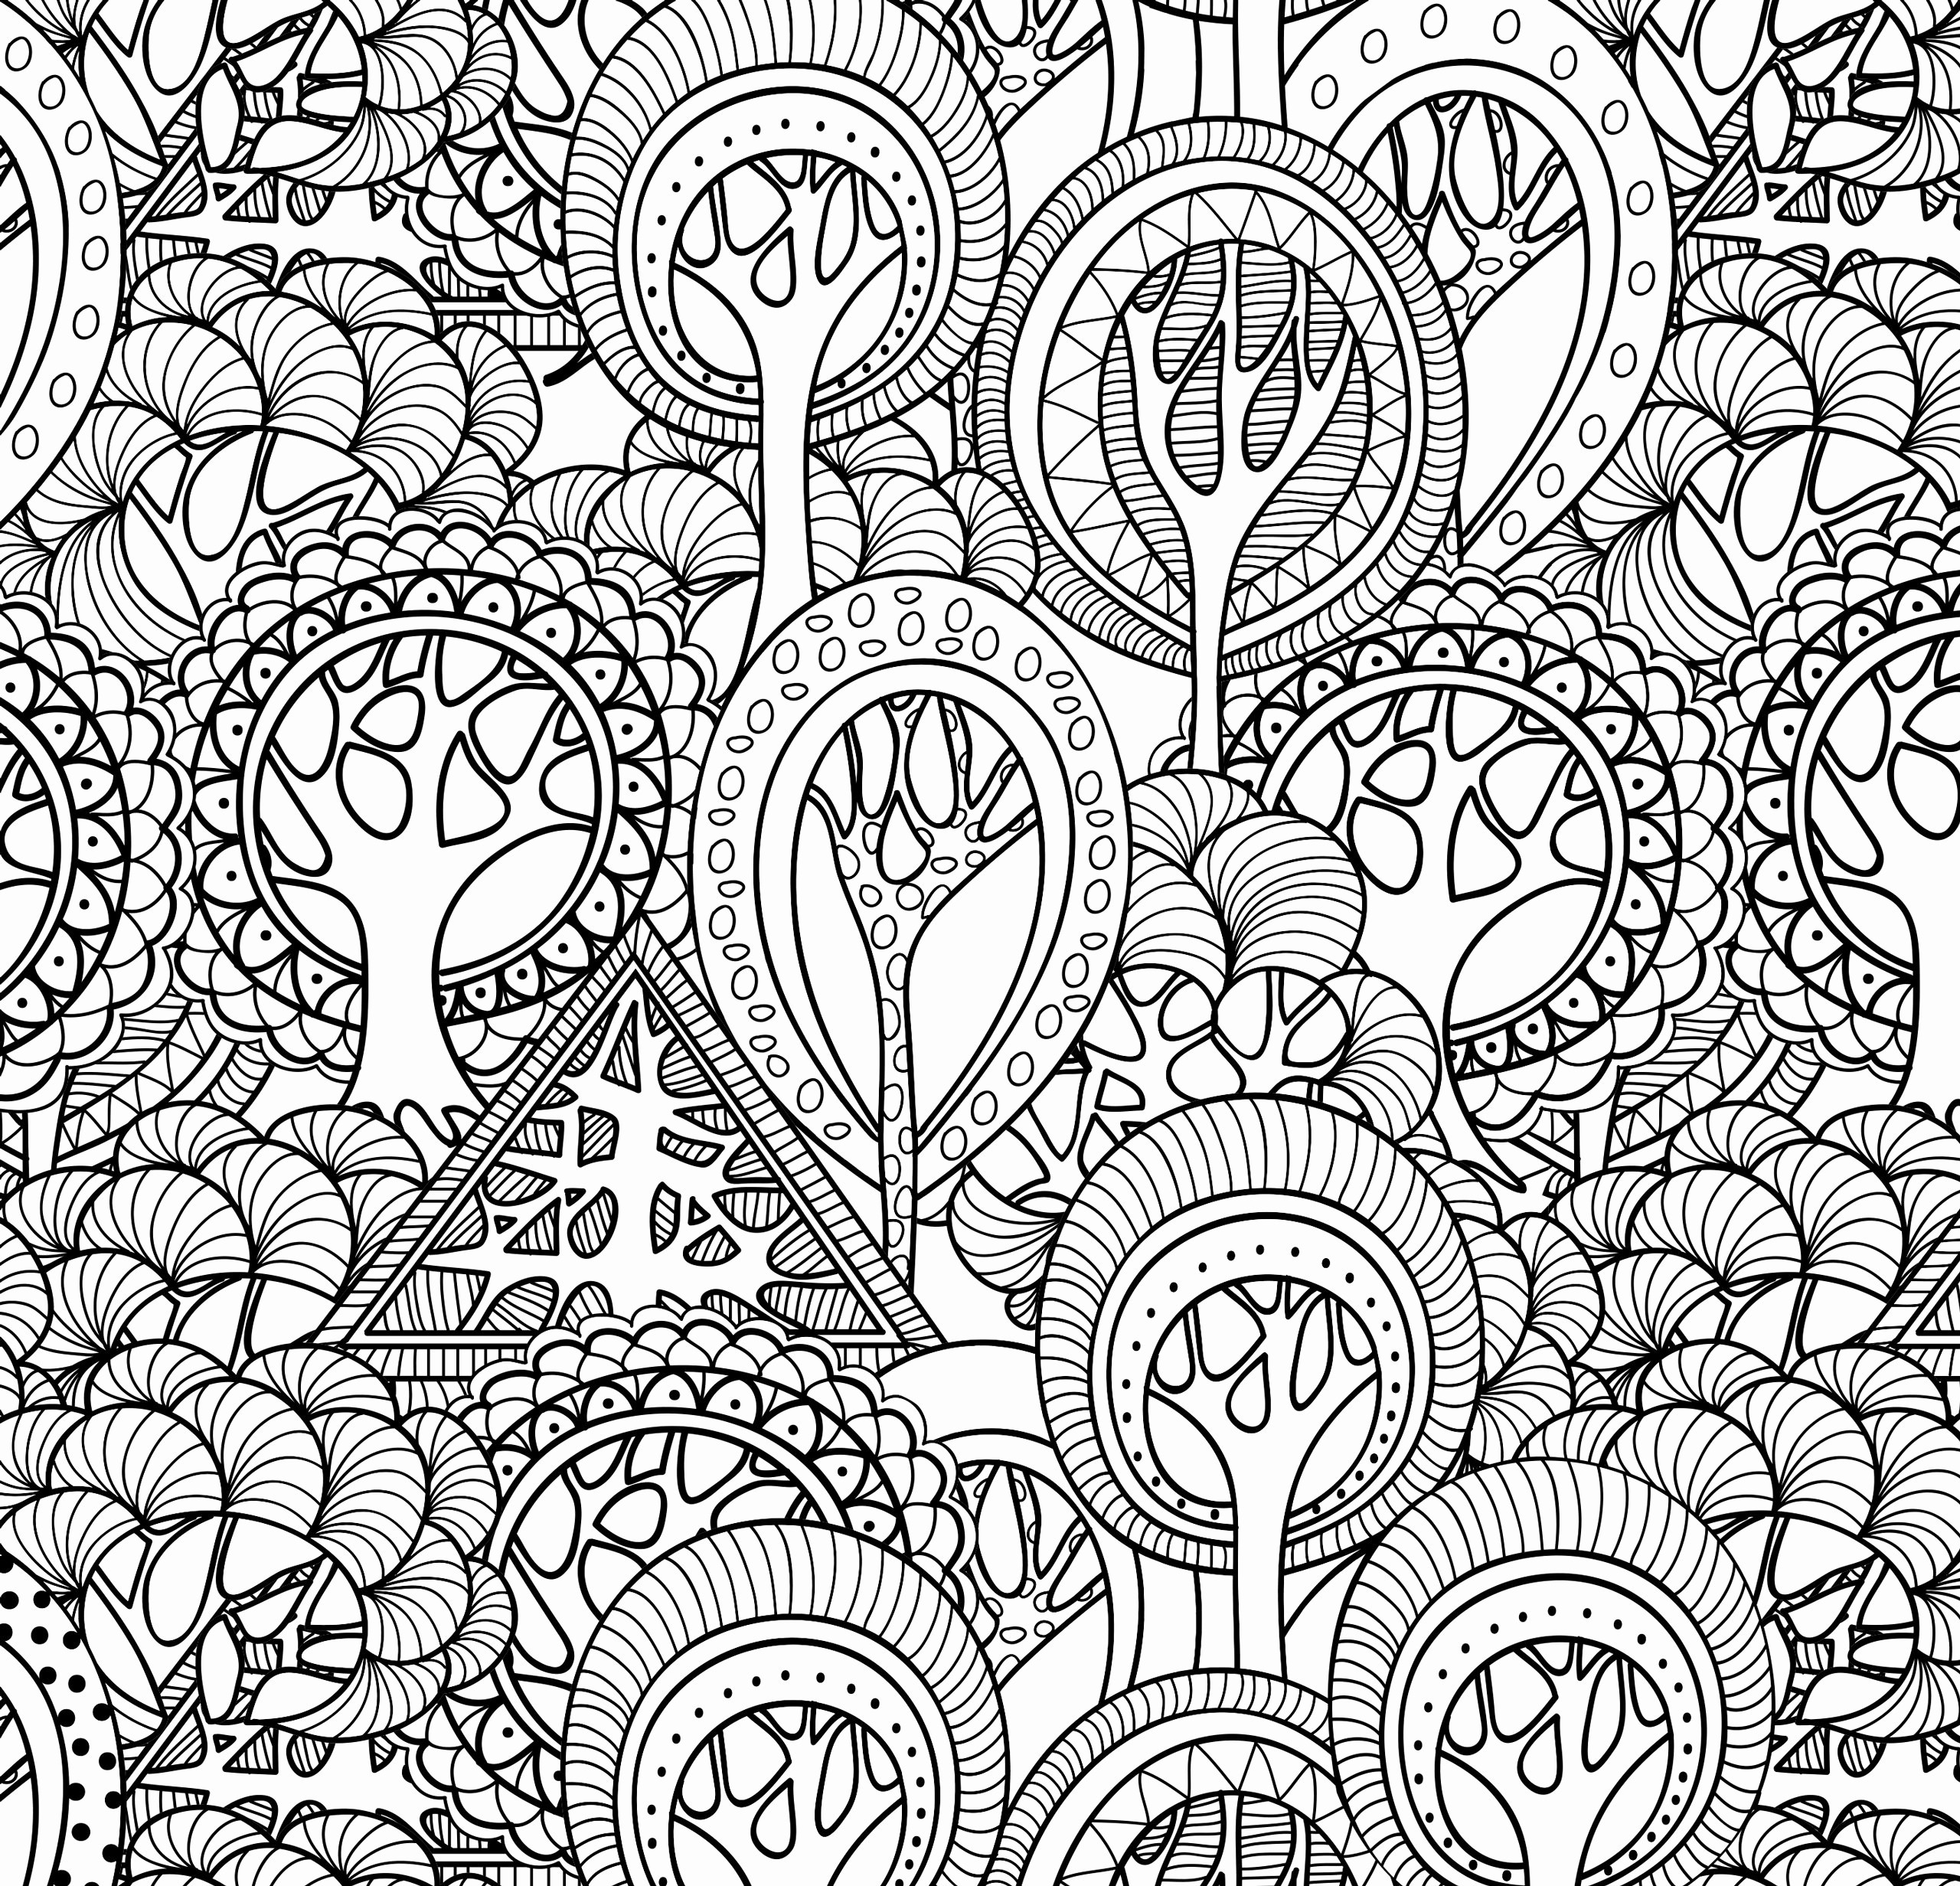 - Complex Coloring Pages For Teens And Adults - Best Coloring Pages